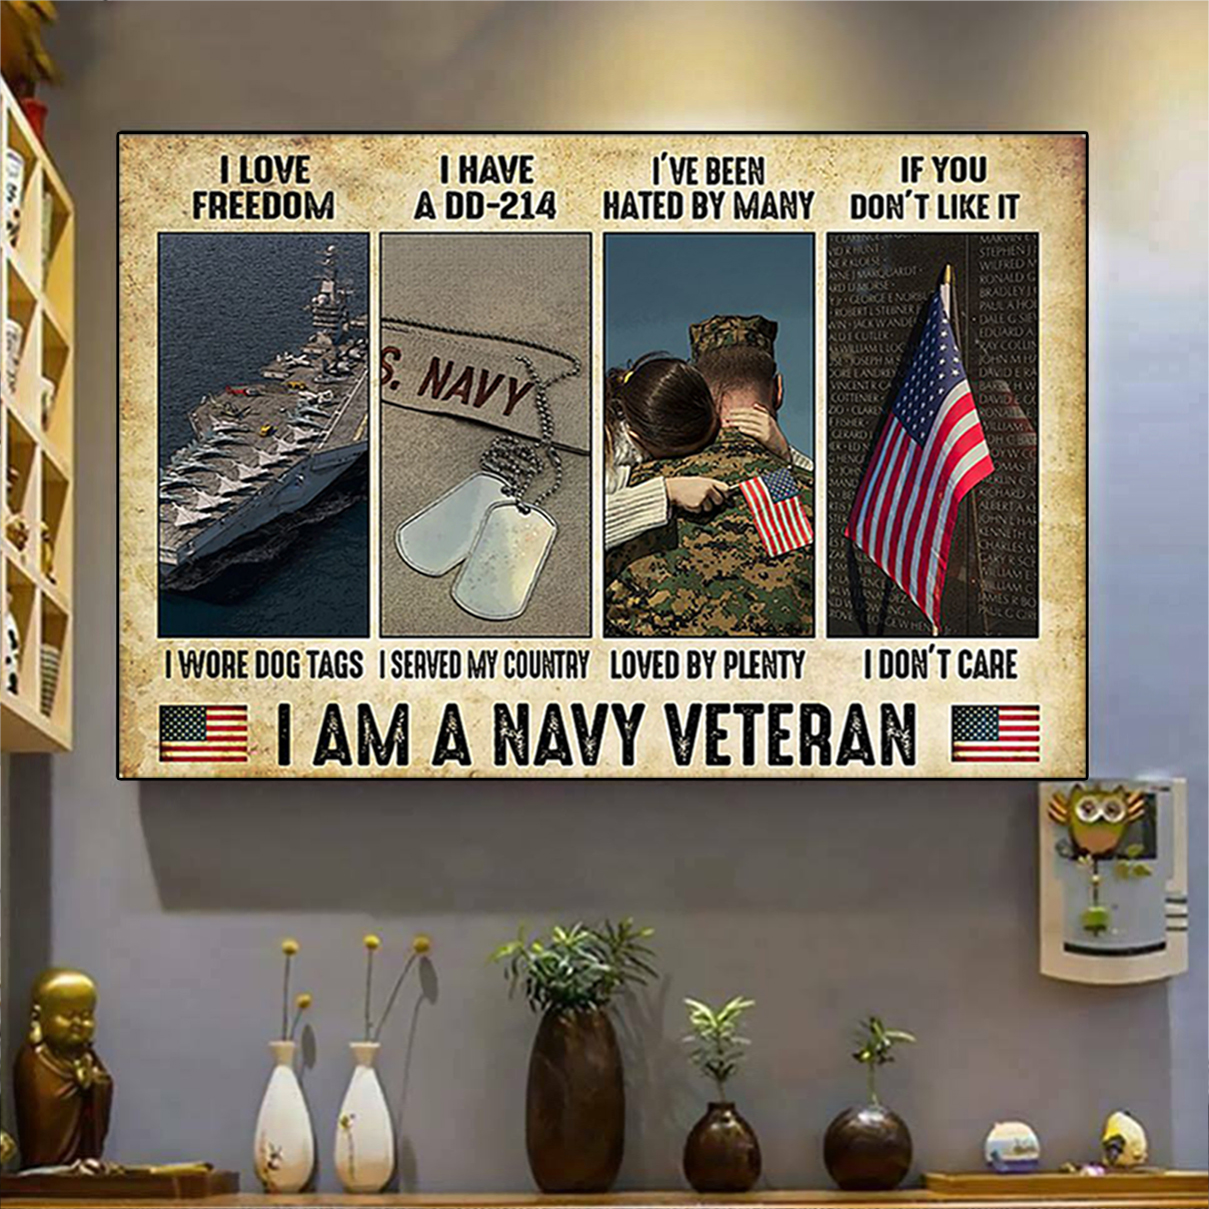 I am a navy veteran poster A3